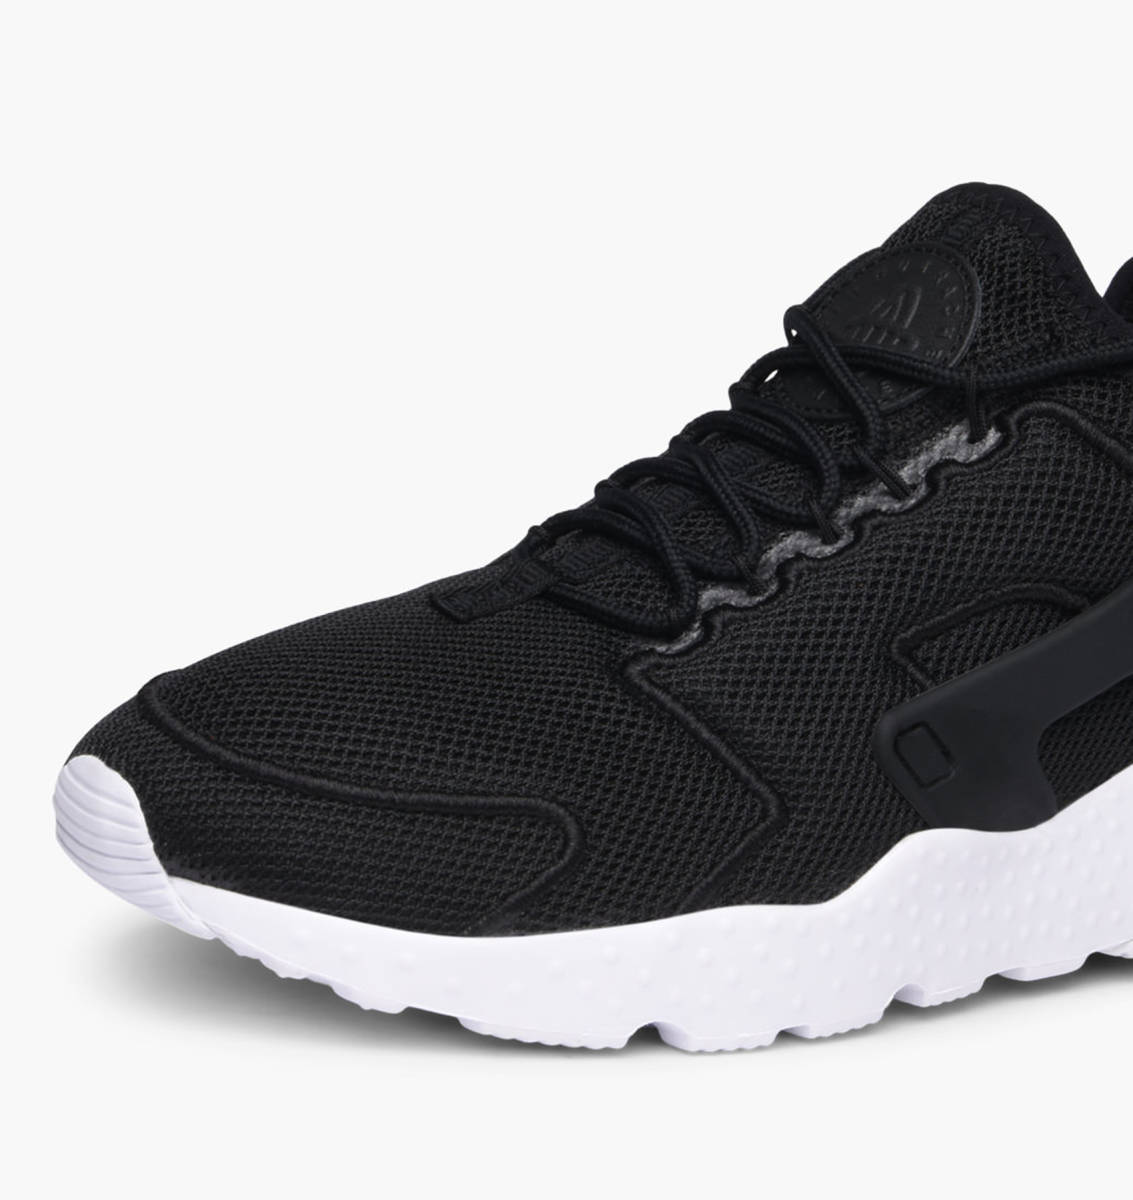 brand new 9cf4a 37403 ... ebay nike wmns air huarache run ultra br 833292 004 26cfb 381c2